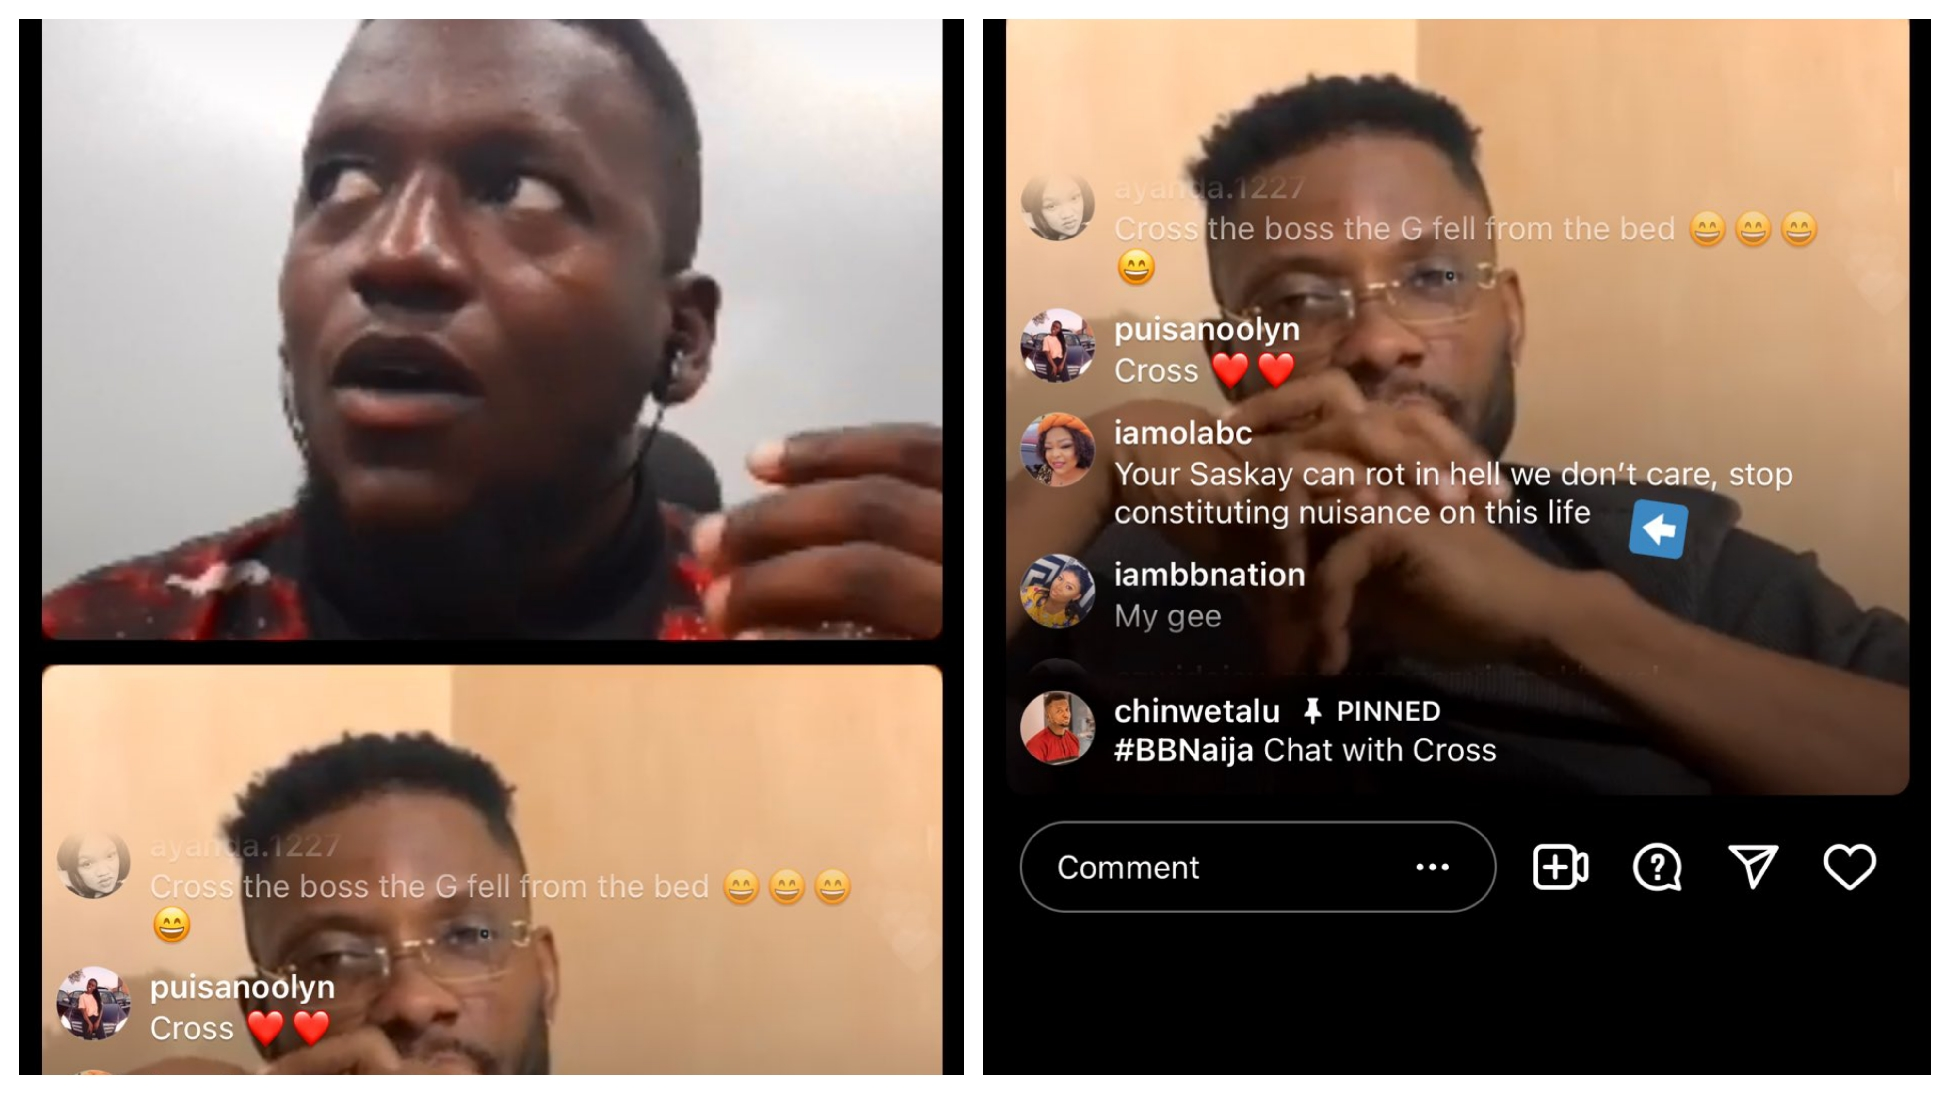 BBNaija: Cross goes live on Instagram, showers his fans with prayers and good wishes